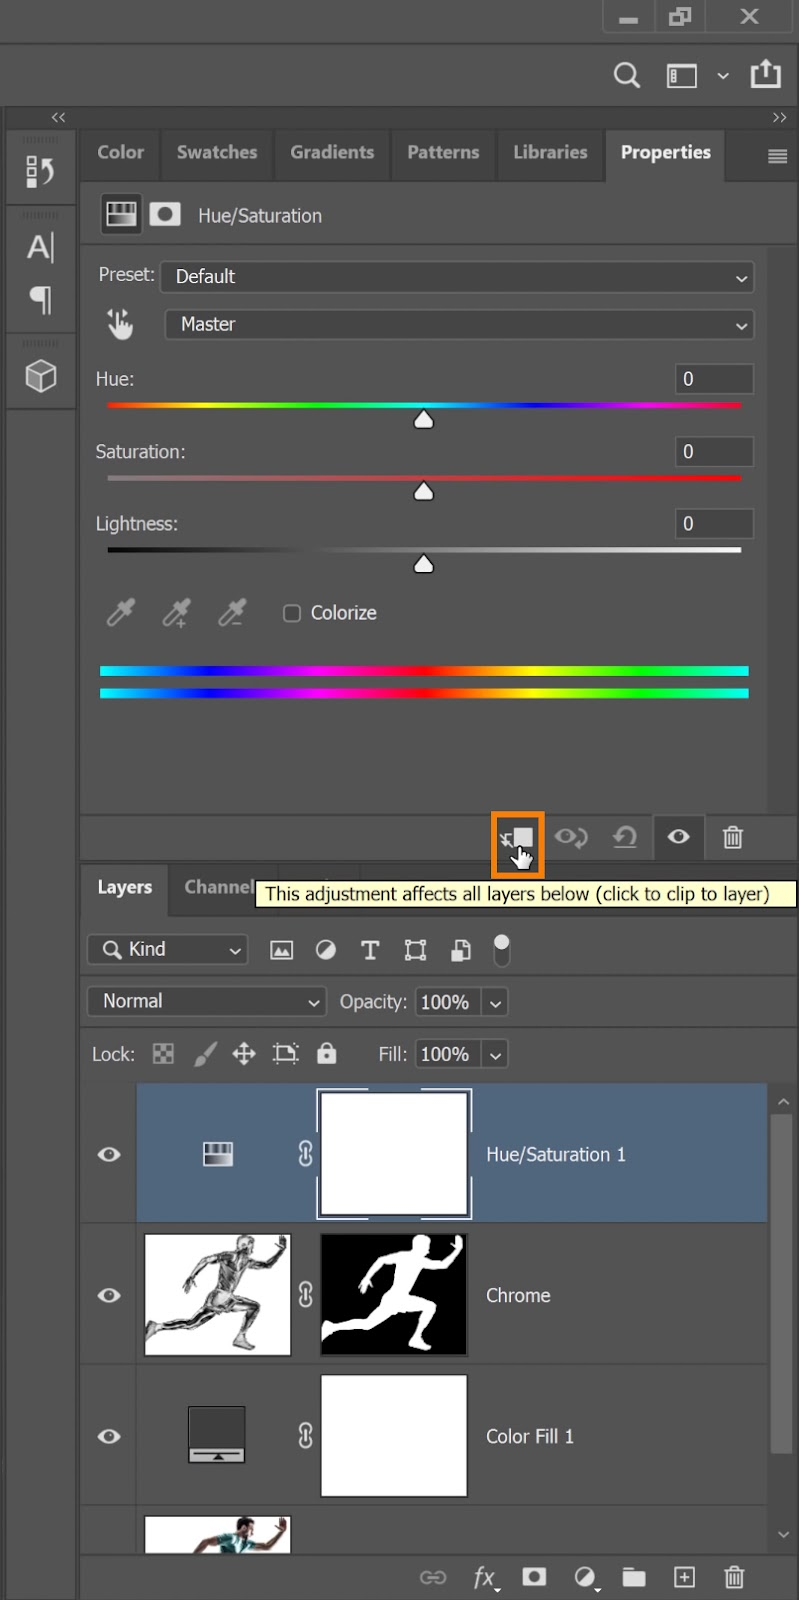 On your Properties panel, click on the Clip Layer Mask icon to clip the adjustment layer to the Chrome layer below it